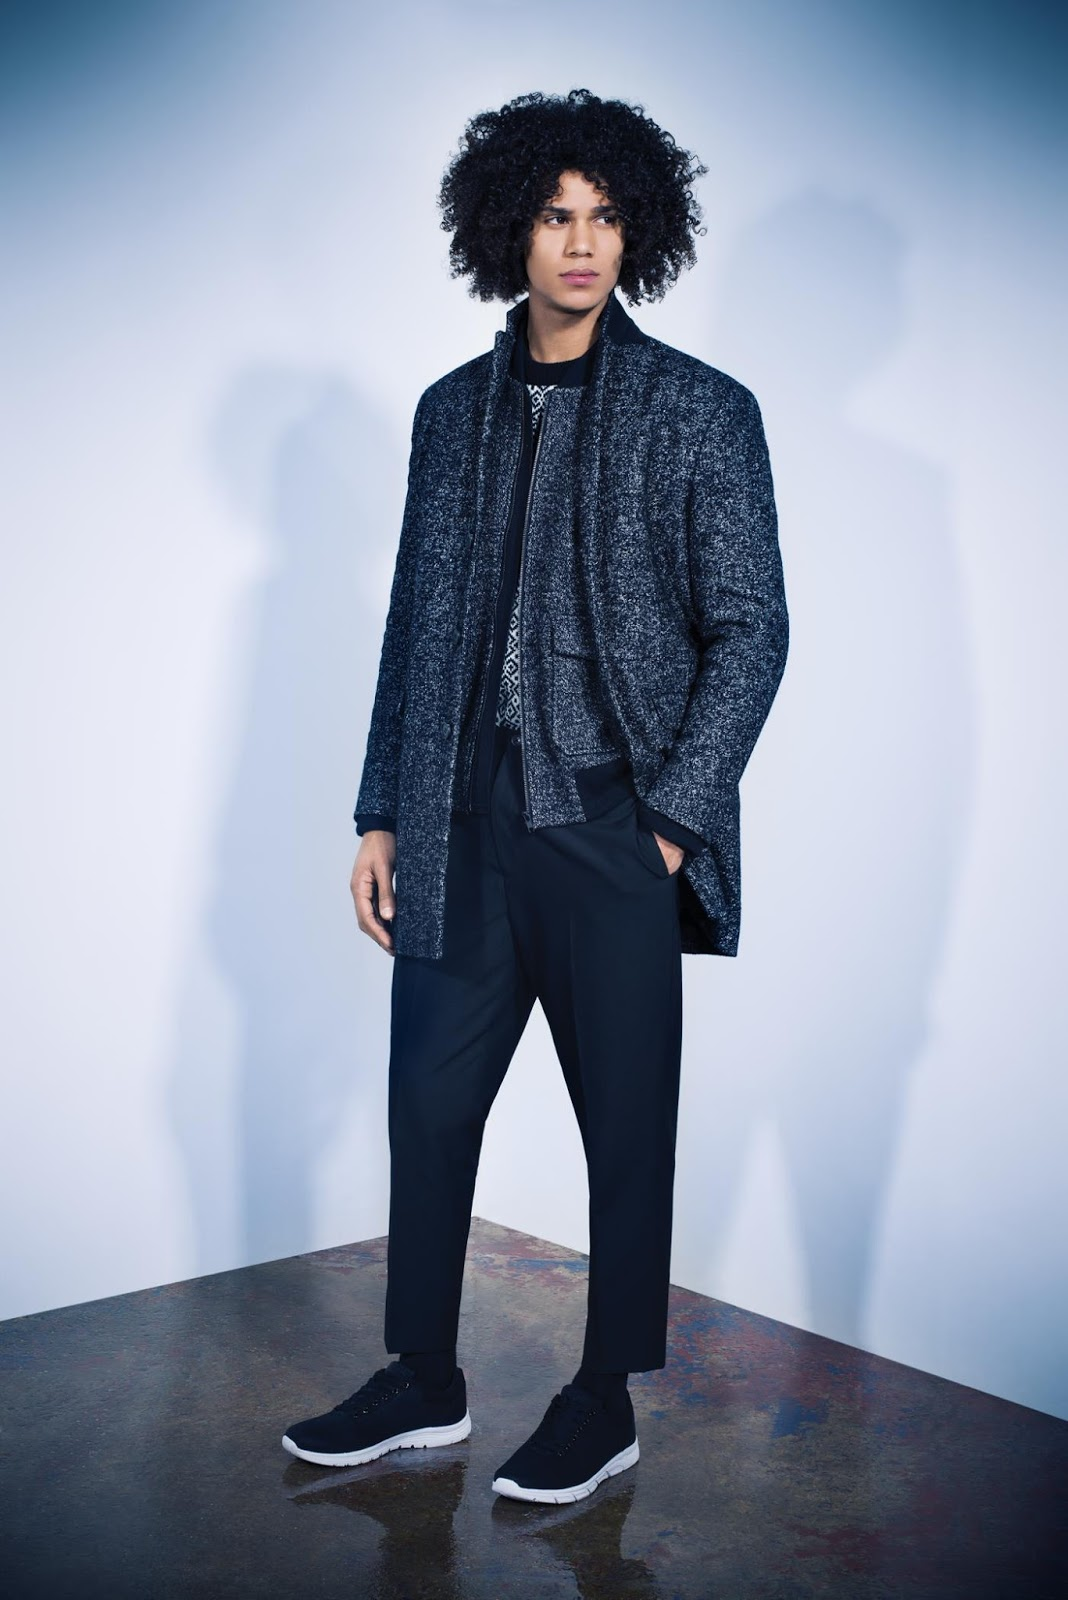 new-look-menswear-aw-16, neuw-look-men-aw-16, new-look-menswear, new-look-man, new-look-men, vetements-homme-new-look, new-look-womenswear-aw16, new-look-womenswear, new-look-prêt-à-porter, vetements-new-look, new-look-clothes, adresse-new-look, new-look-homme, new-look-enfant, new-look-homme, magasin-new-look, magasin-new-look-homme, new-look-paris, sac-new-look, lingerie-new-look, chaussures-new-look, stilettos-new-look, bottes-new-look, escarpins-new-look, baskets-new-look, maquillage-new-look, dudessinauxpodiums, du-dessin-aux-podiums, manteau-new-look, pull-new-look, pull-tendance-new-look, jean-slim-new-look, sweat-new-look, accessoires-new-look, bijoux-new-look